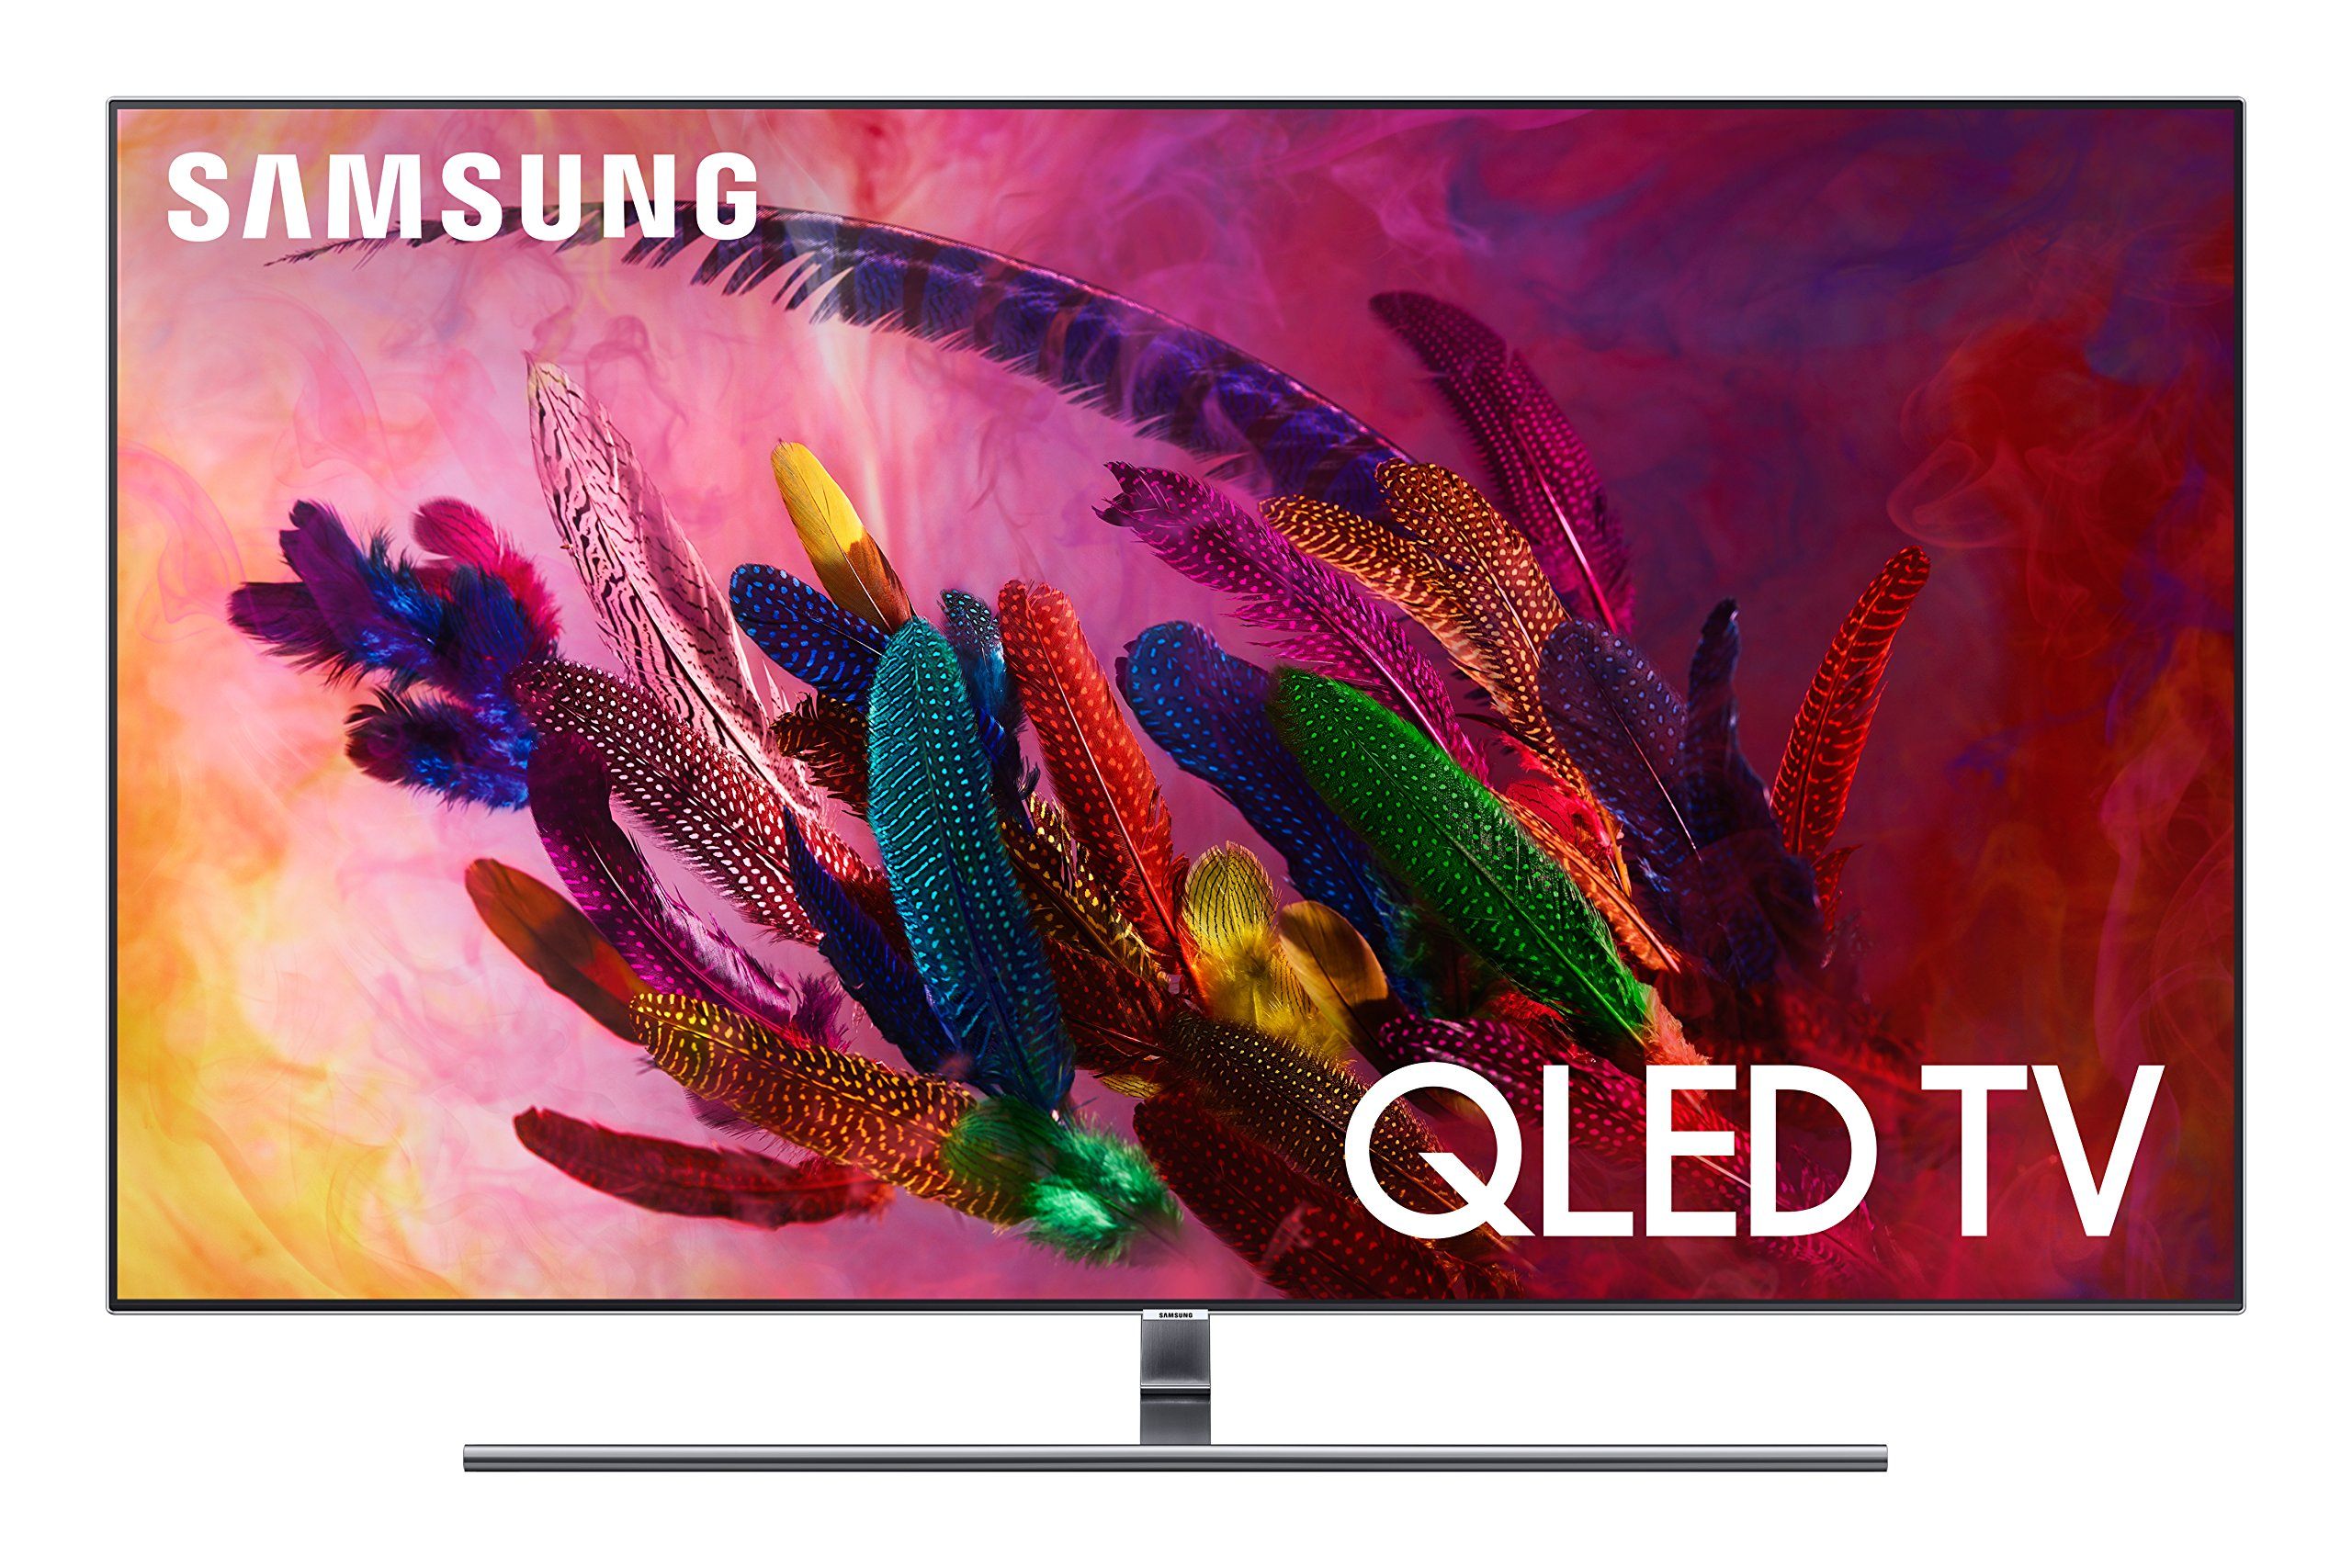 Samsung Flat QLED 4K UHD 7 Series Smart TV 2018 - 91yuNNBjkgL - Samsung Flat QLED 4K UHD 7 Series Smart TV 2018